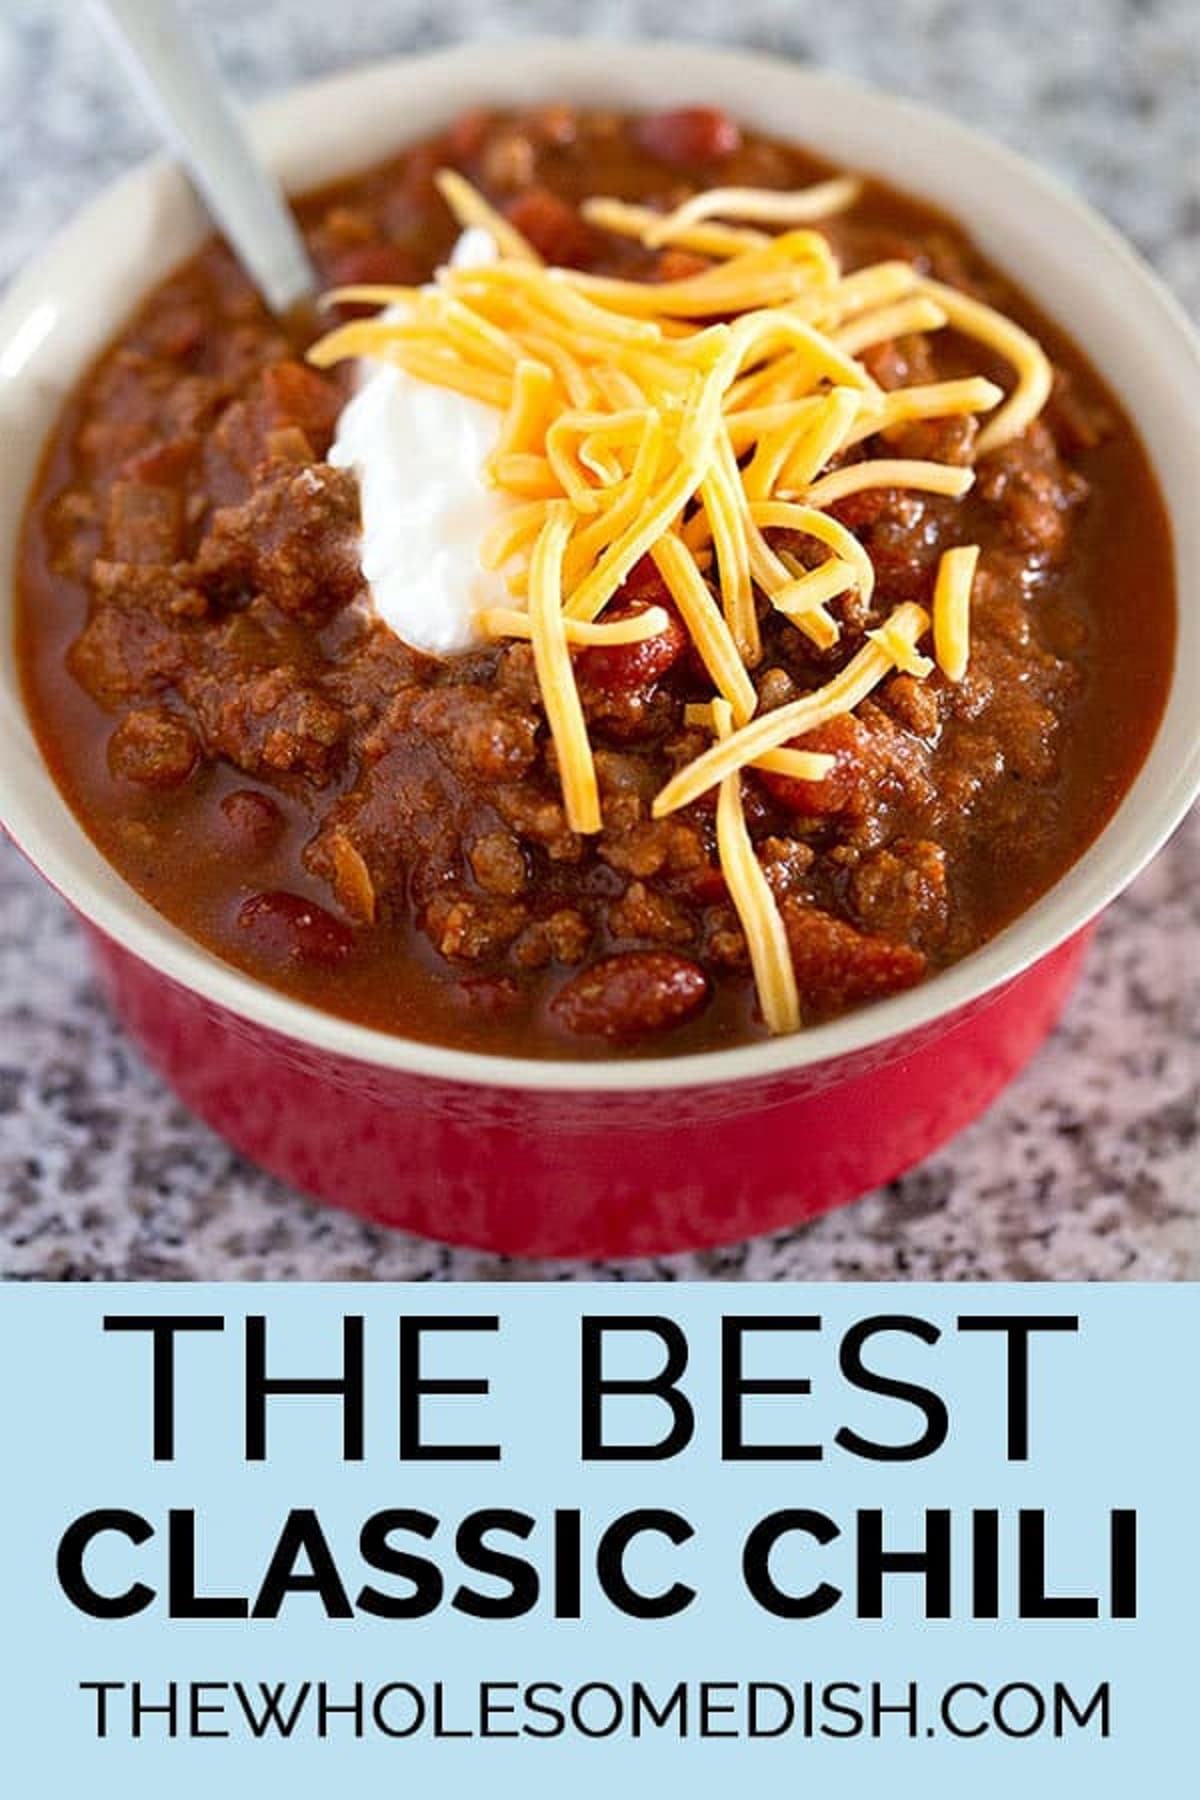 The Best Classic Chili from The Wholesome Dish